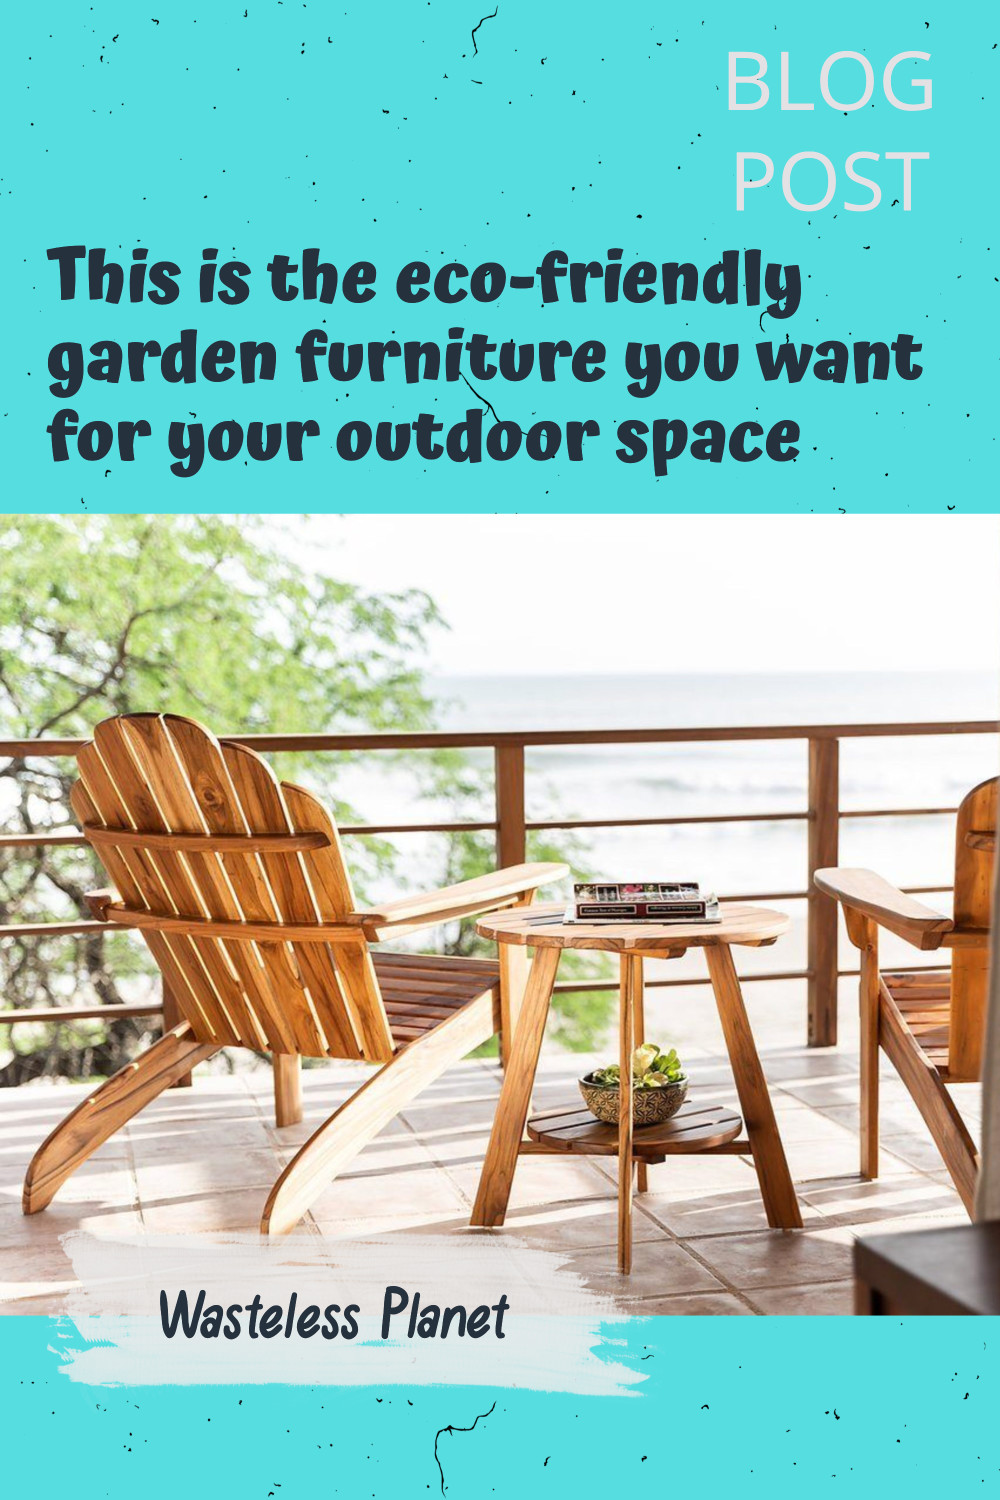 This is the eco-friendly garden furniture you want for your outdoor space